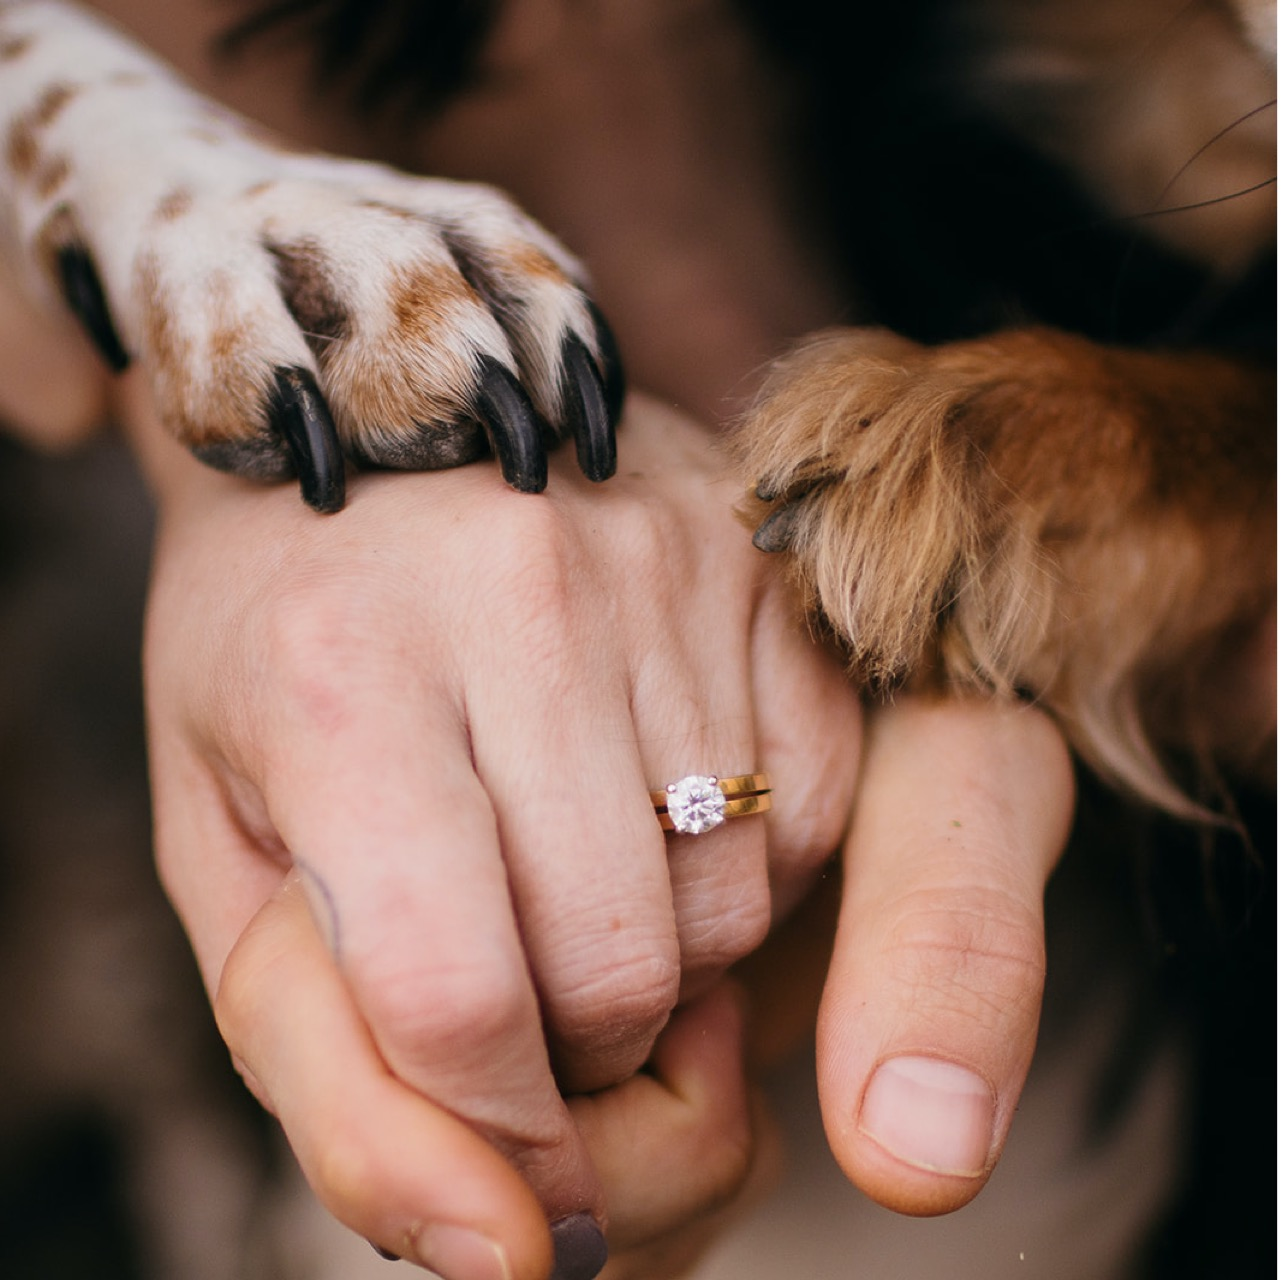 A close up photo of an engaged couple's hands - showing off her solitaire engagement ring - with two dog paws balanced on top of their hands.